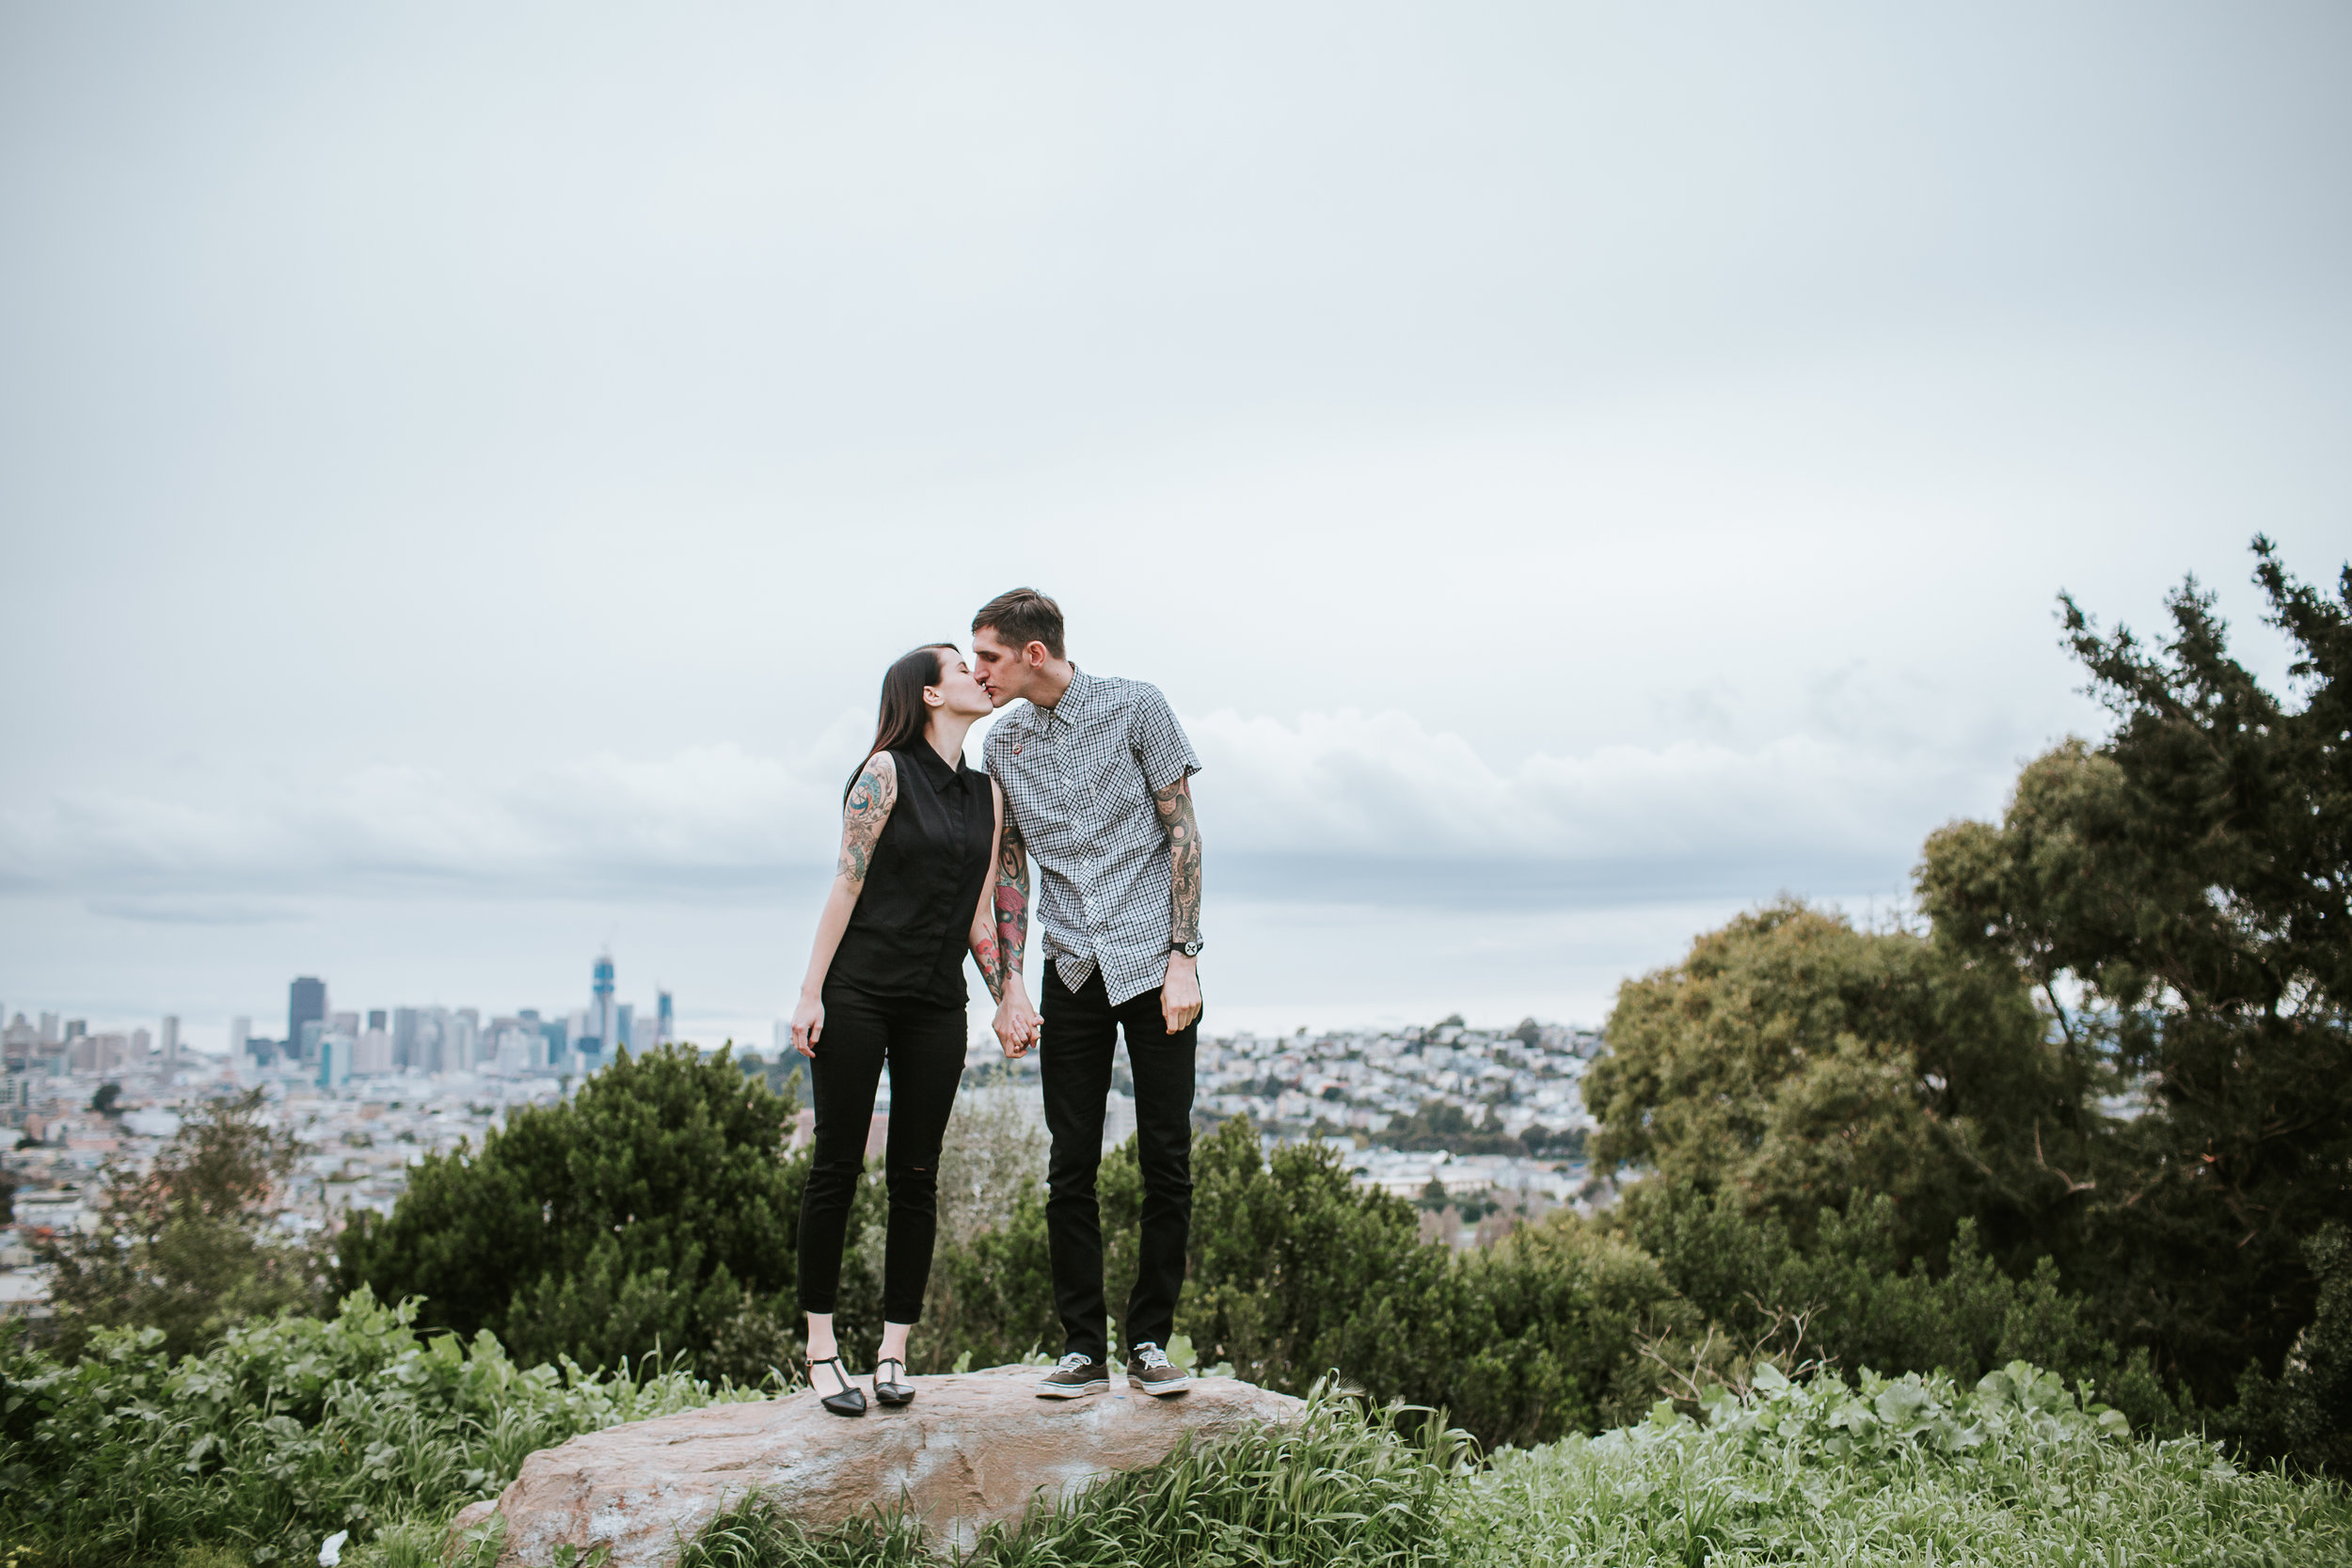 Nikki.Steven.san francisco. engagement. bernal heights dolores mission district-64.jpg